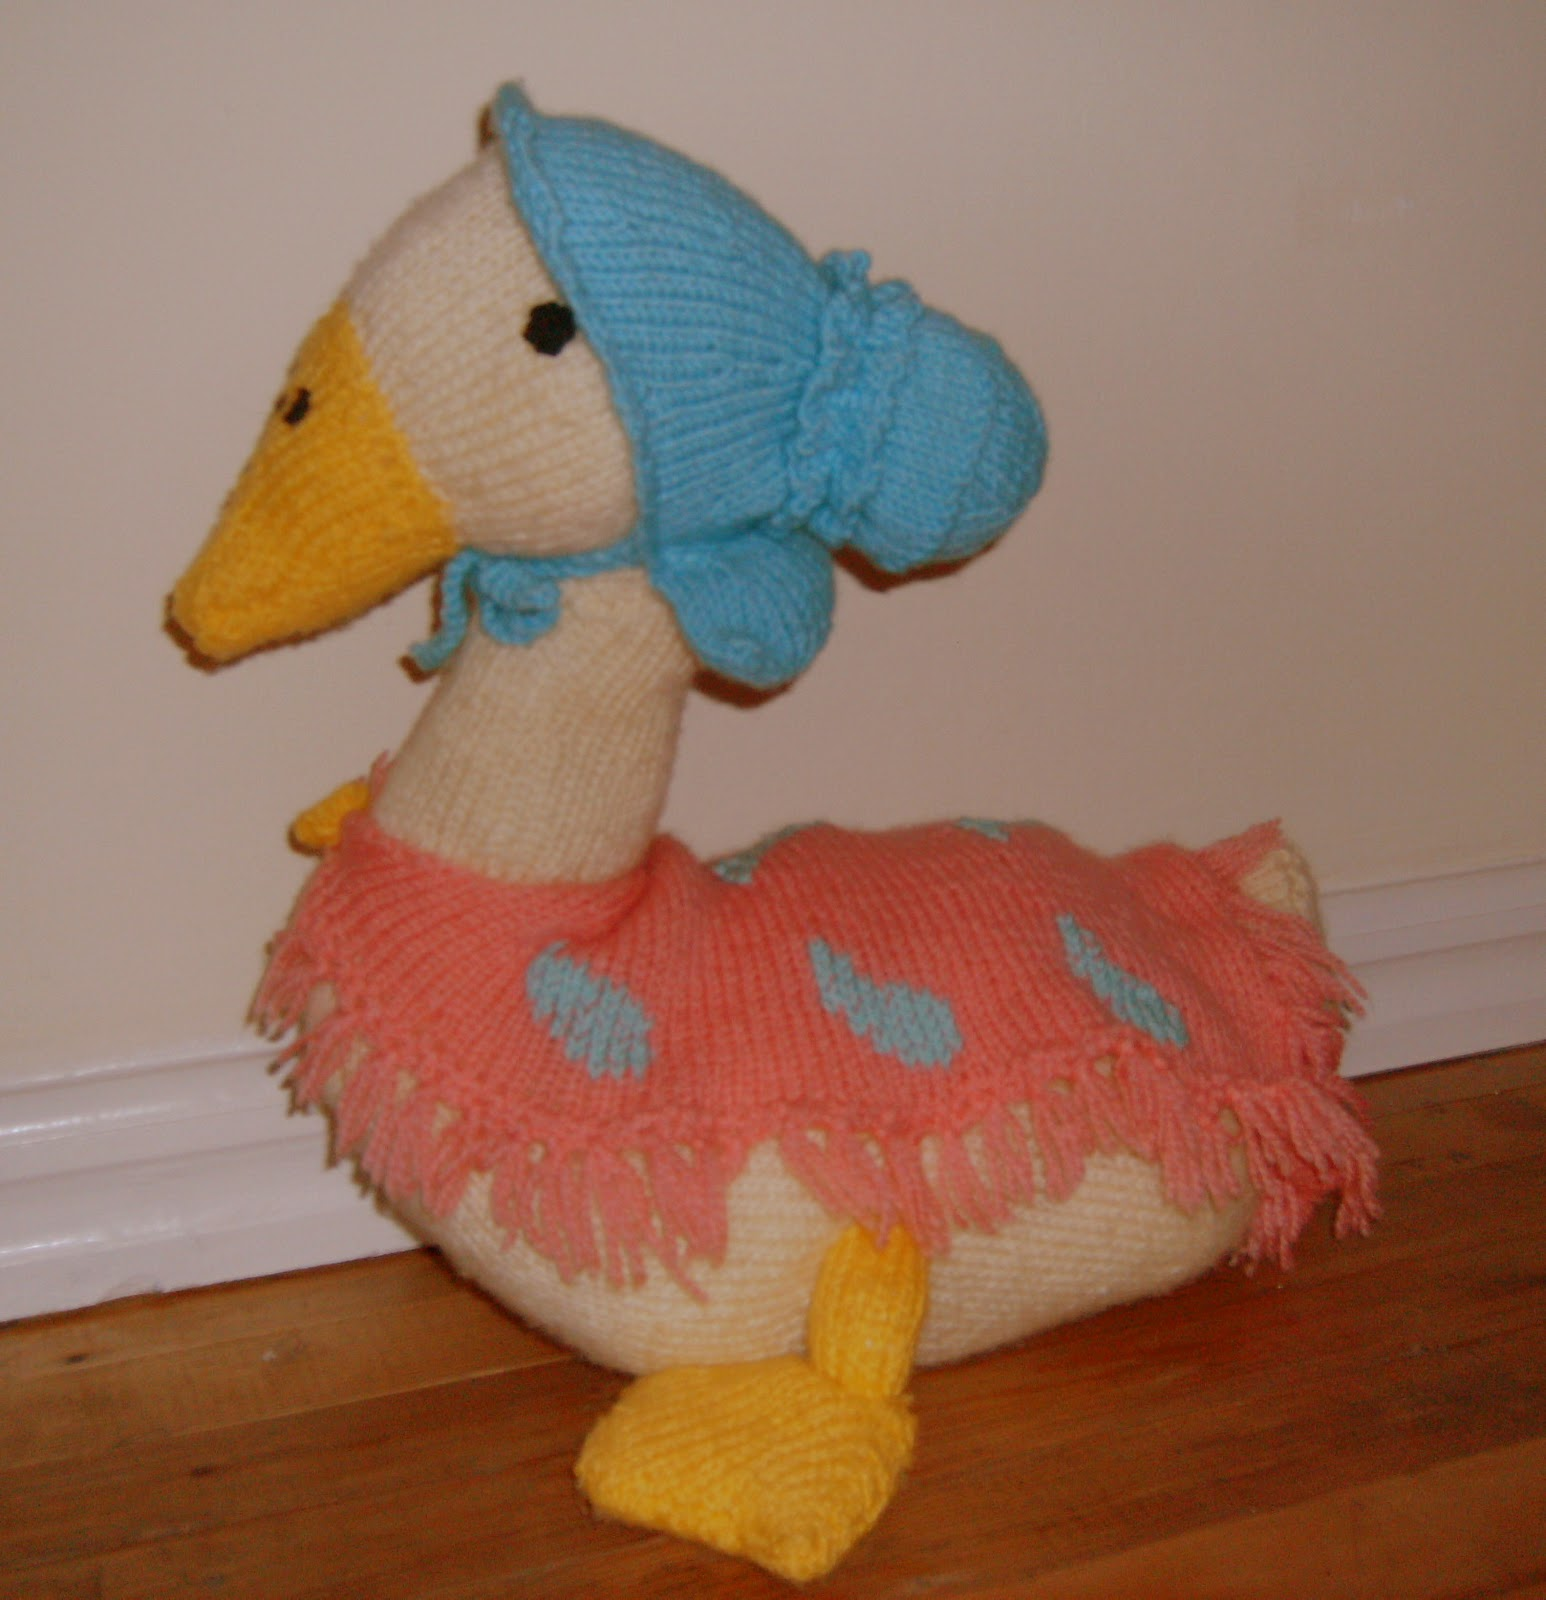 Knitting Addict: Jemima Puddle duck